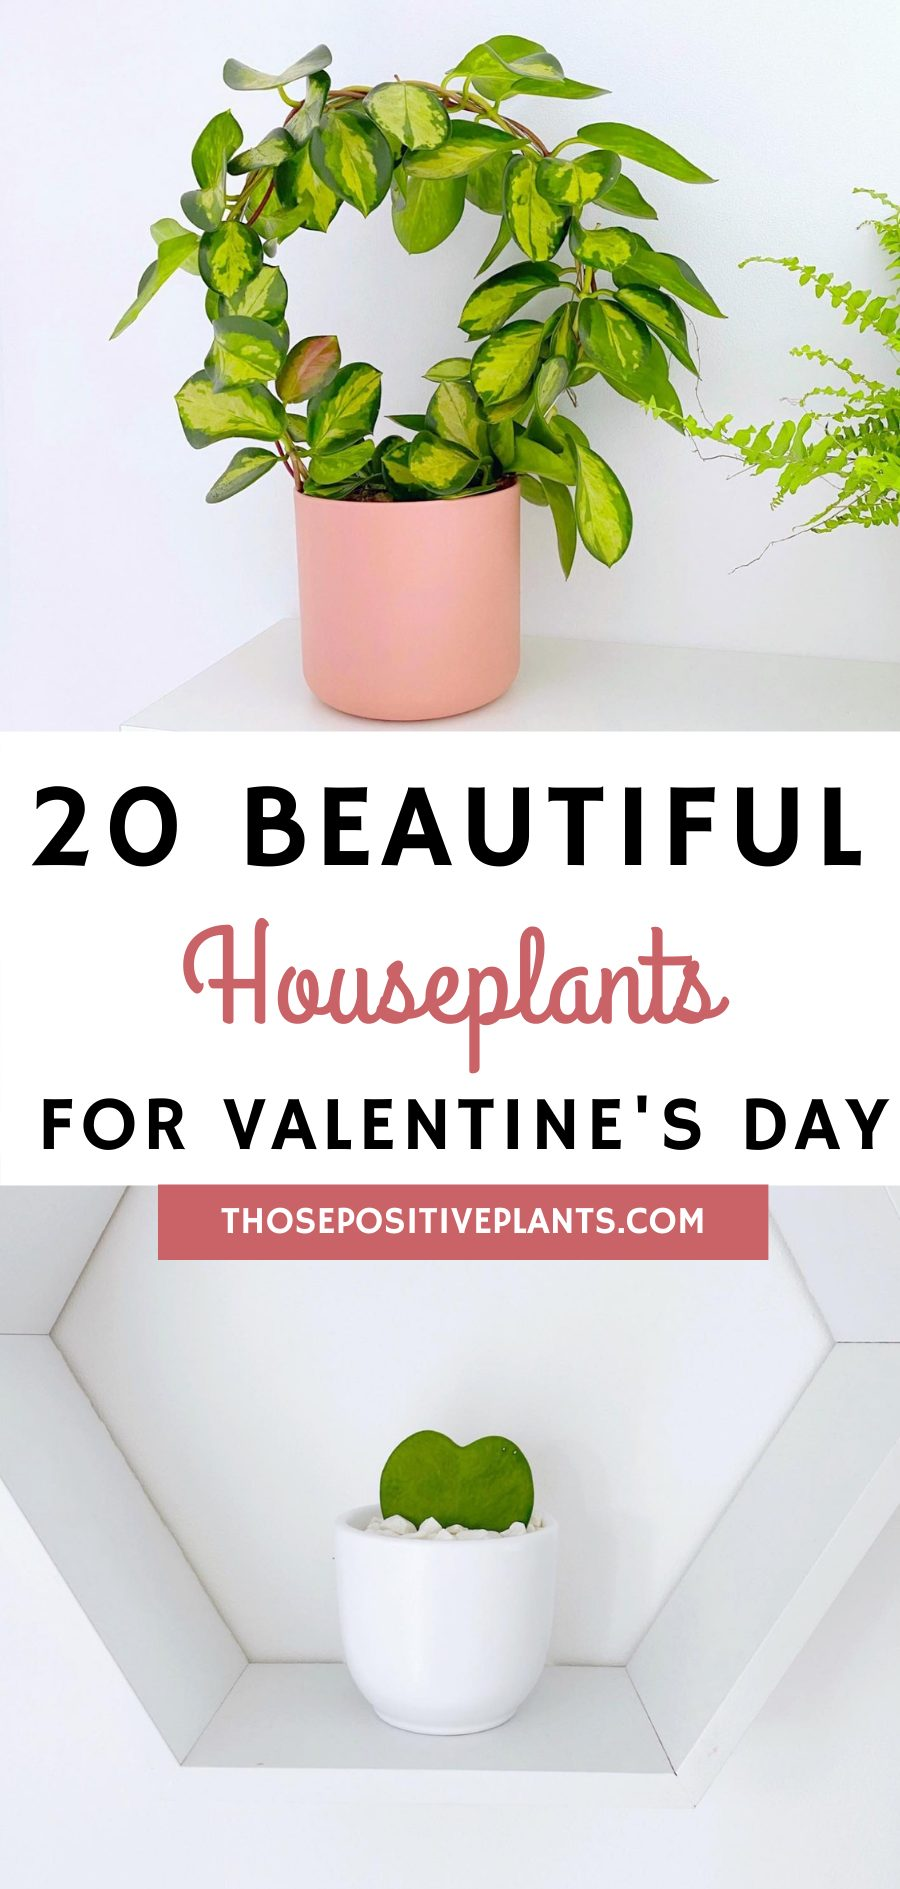 houseplants for valentines day